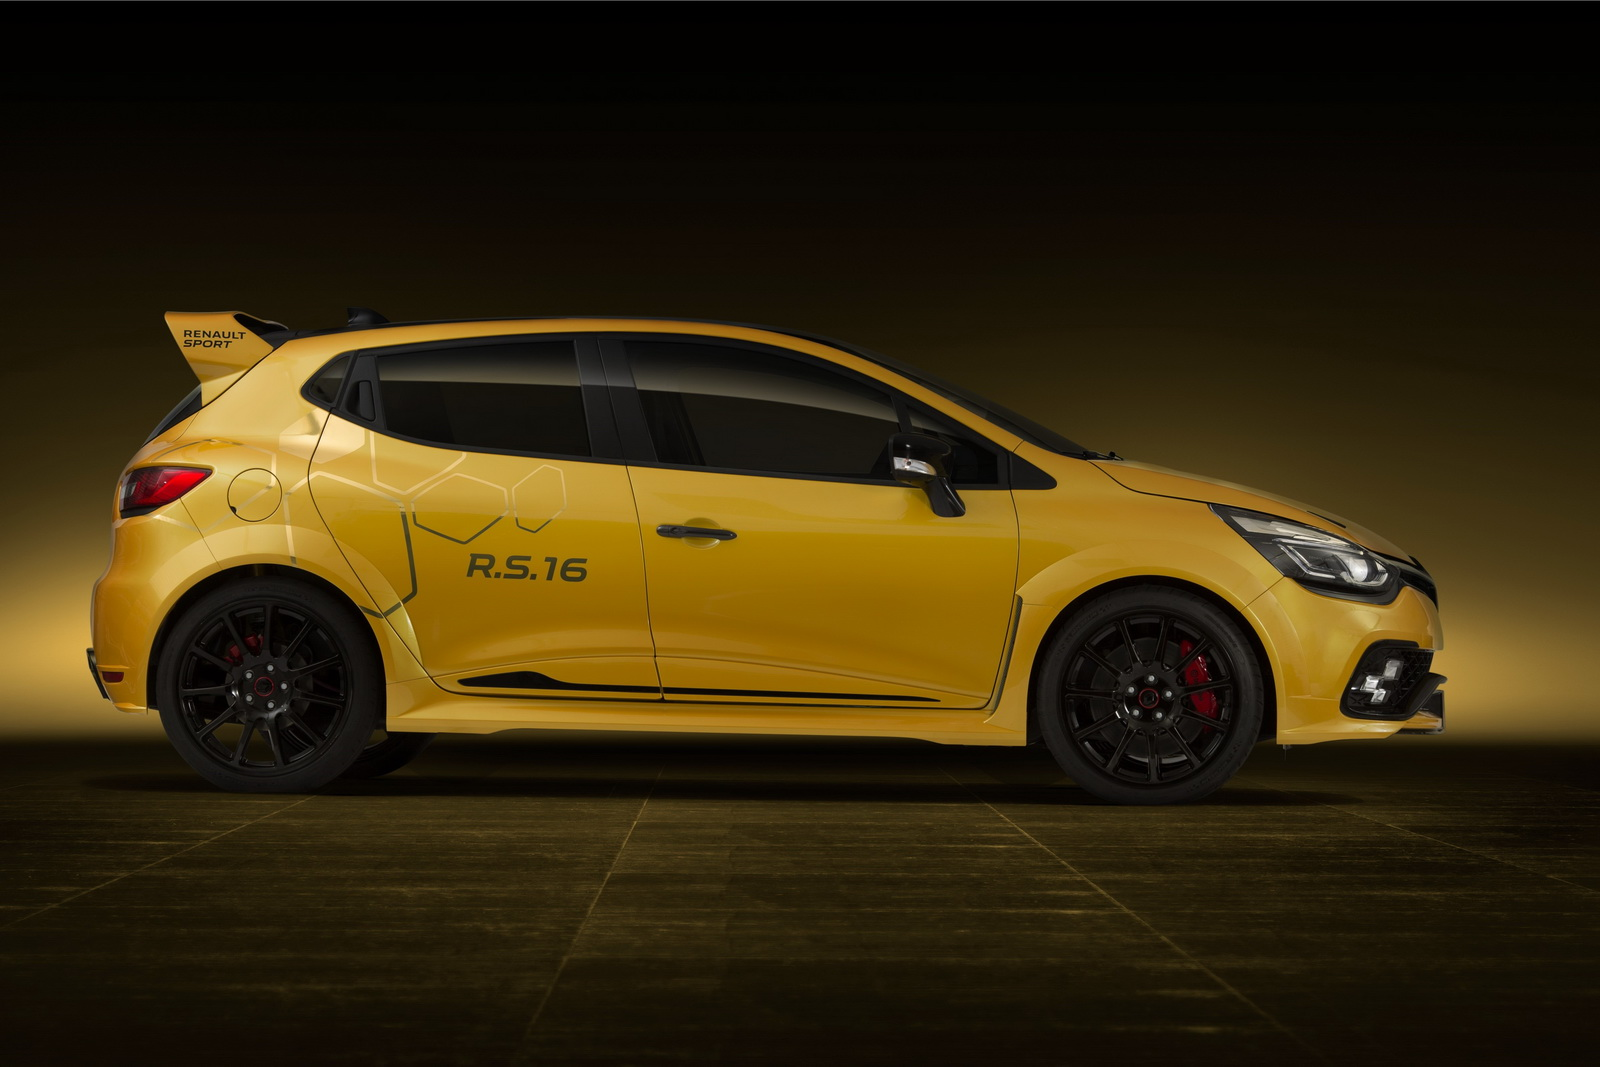 renault reveals crazy special 275hp clio rs 16 concept w video. Black Bedroom Furniture Sets. Home Design Ideas